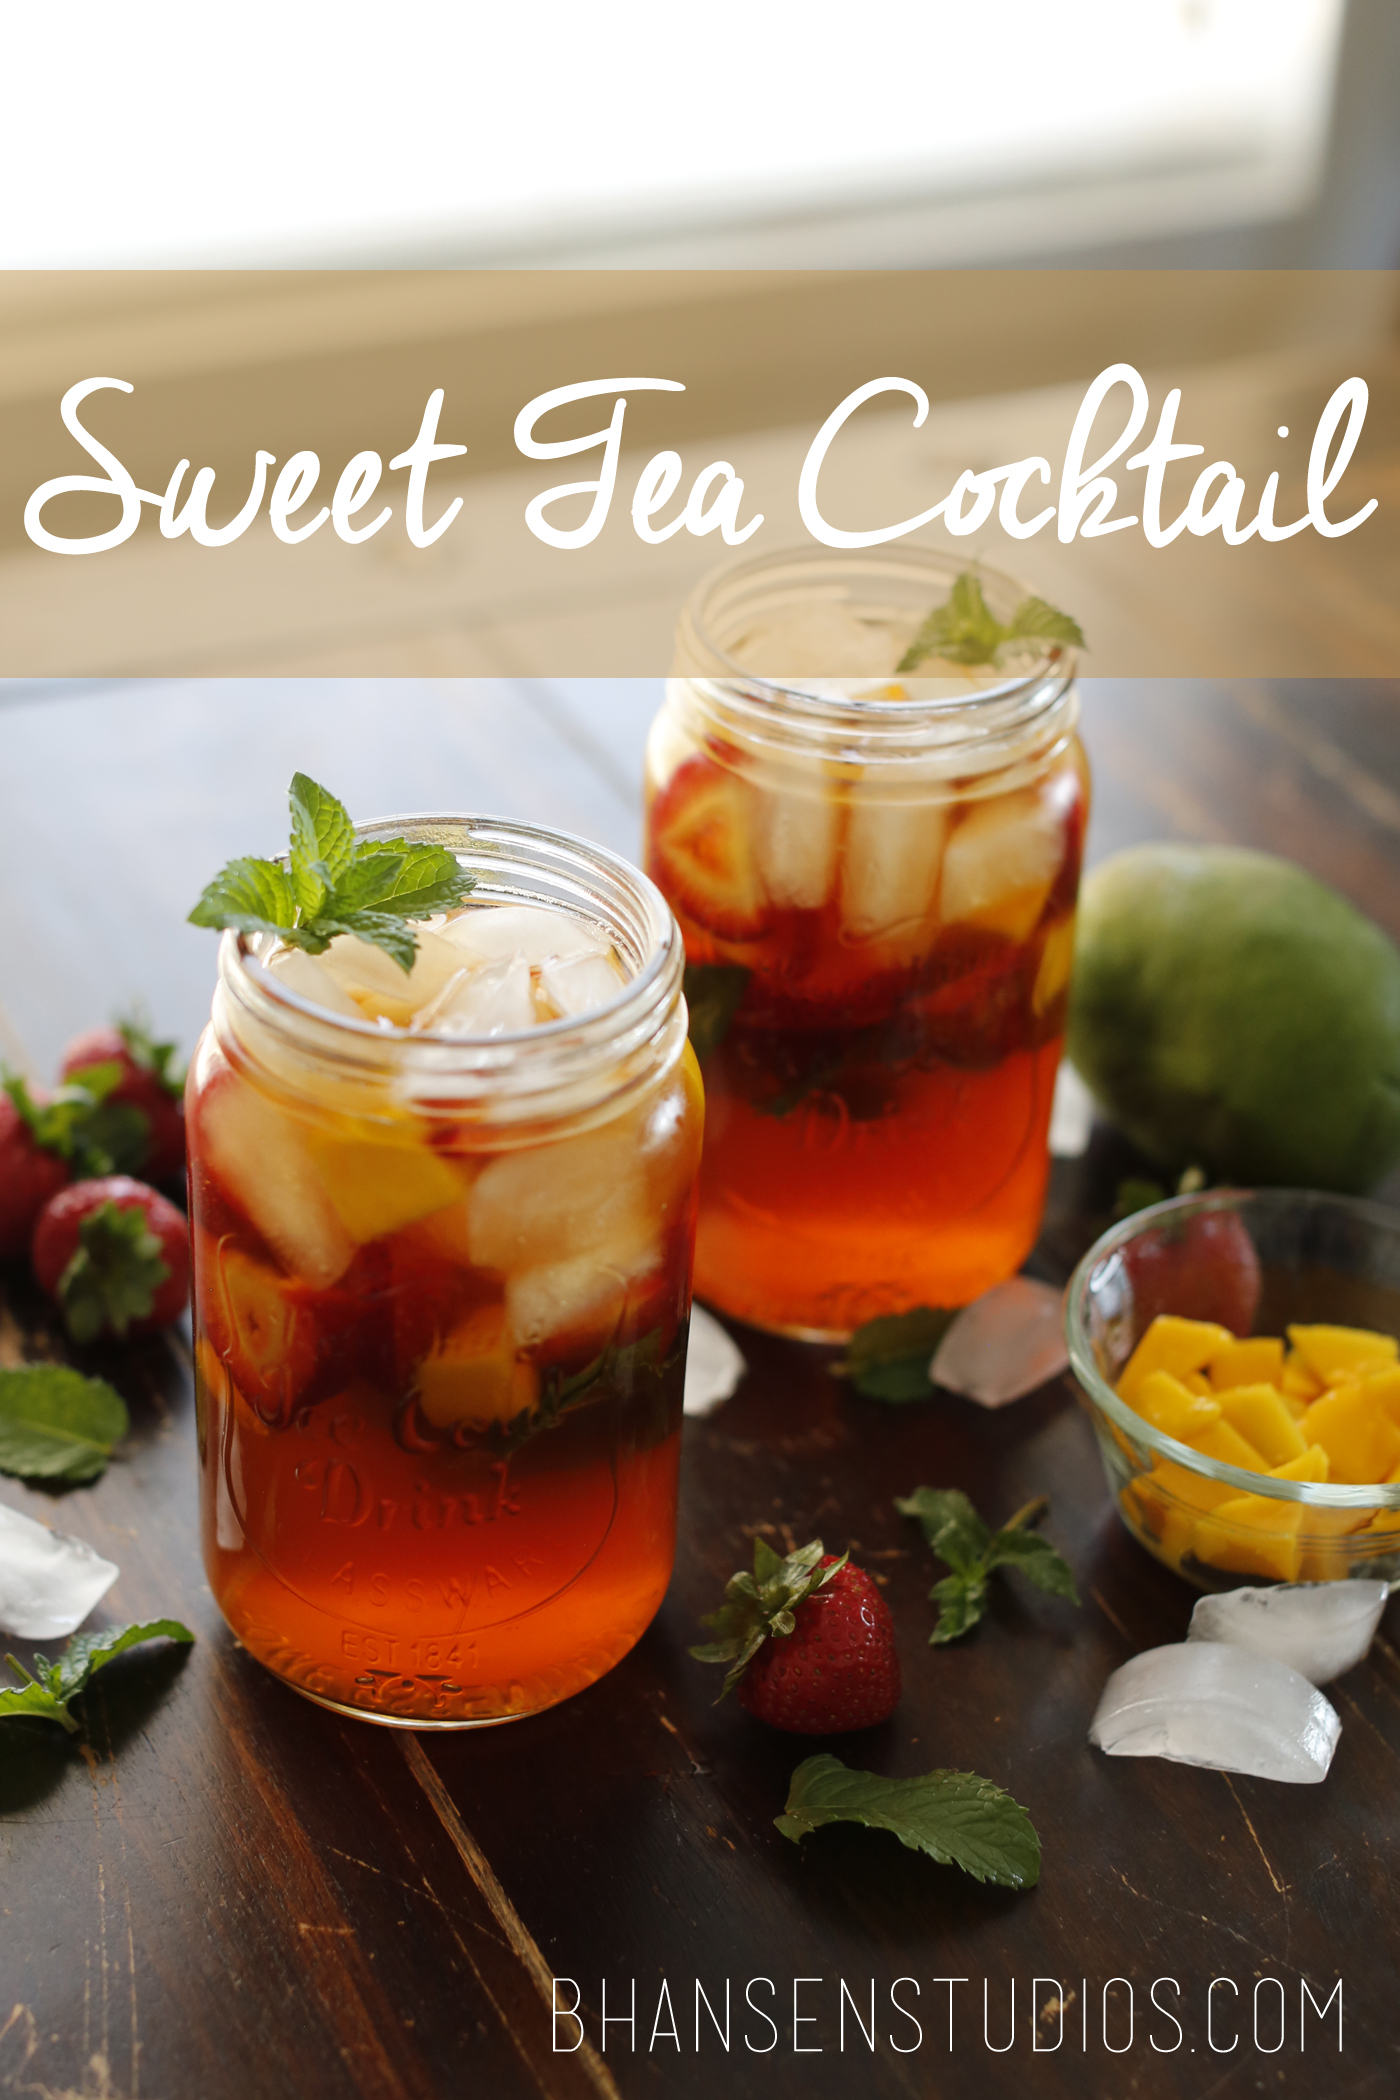 Refreshing summertime sweet tea cocktail